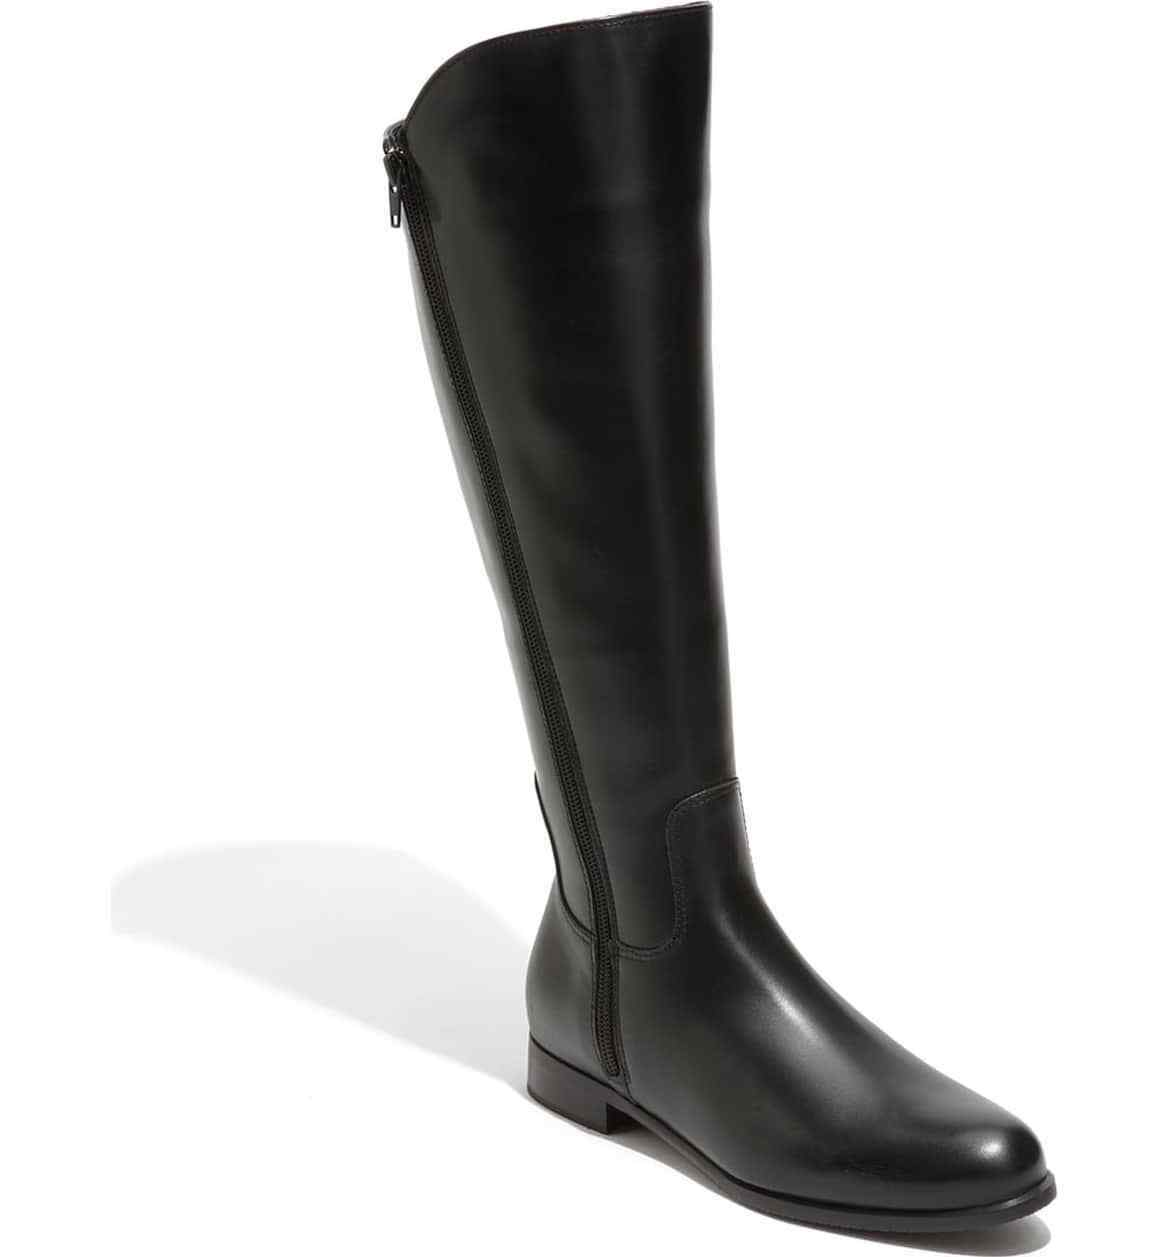 New La Canadienne Serafina Boots  Black Leather Leather Leather  US size  8.5 88d3b9